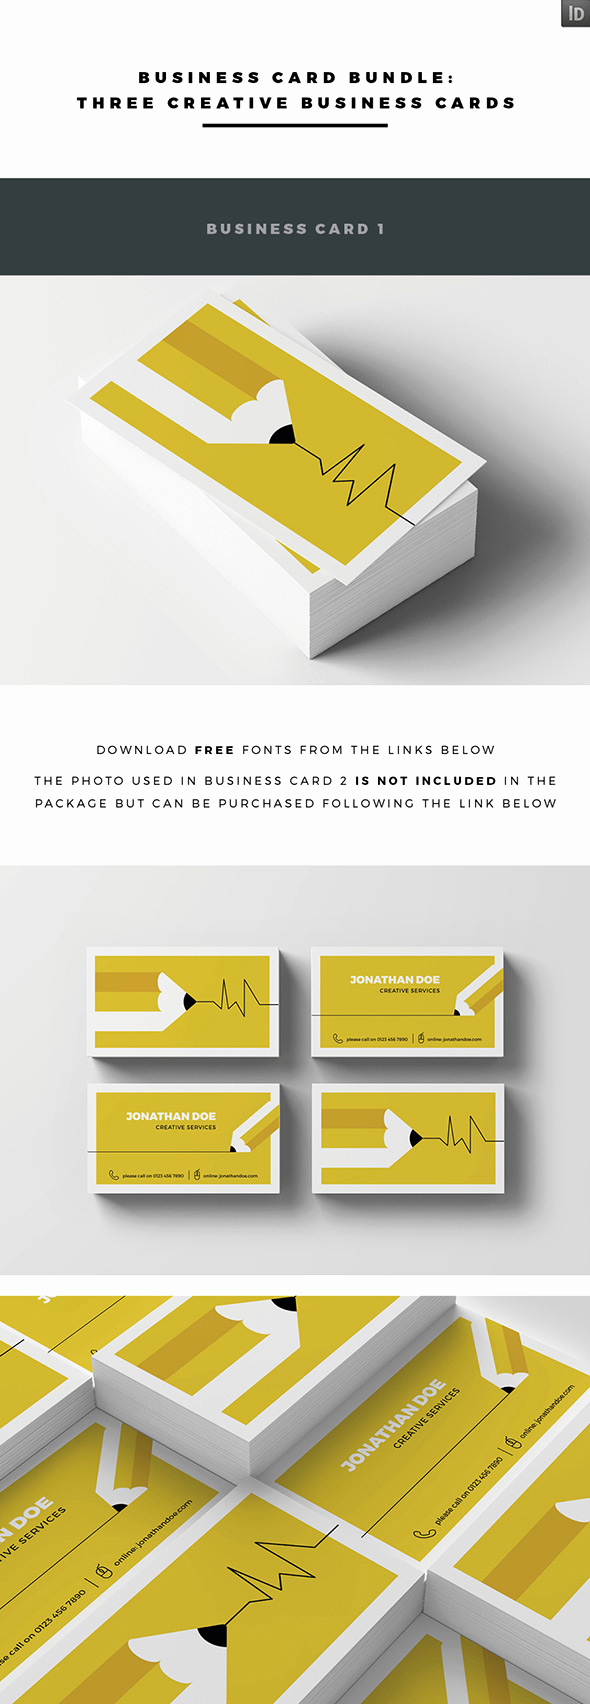 Indesign Business Cards Templates Luxury 15 Premium Business Card Templates In Shop